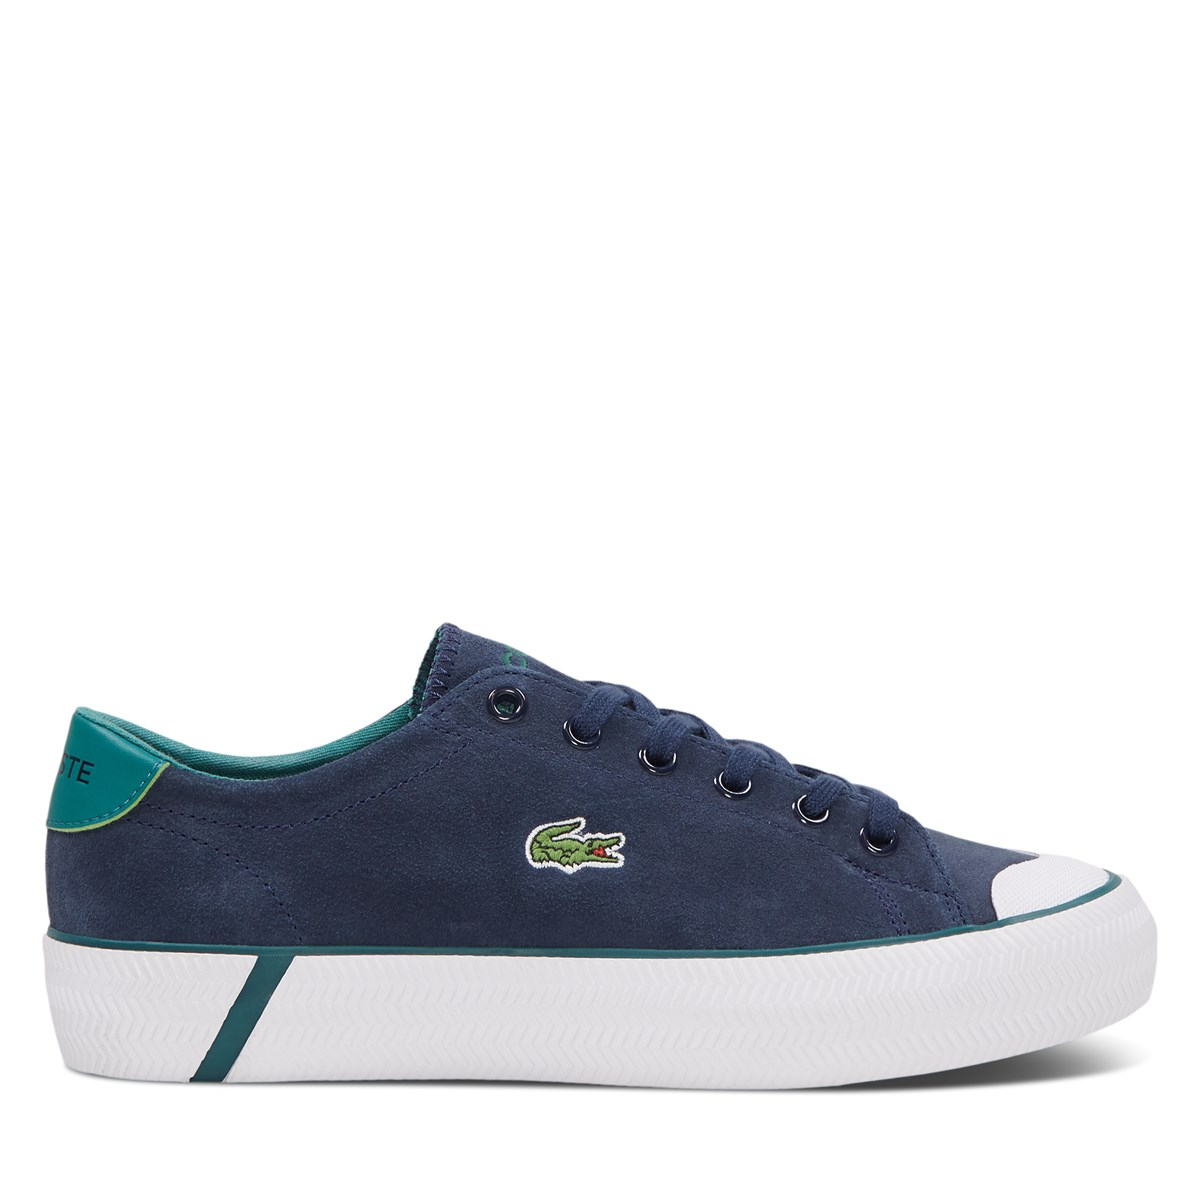 Women's Gripshot Sneakers in Blue